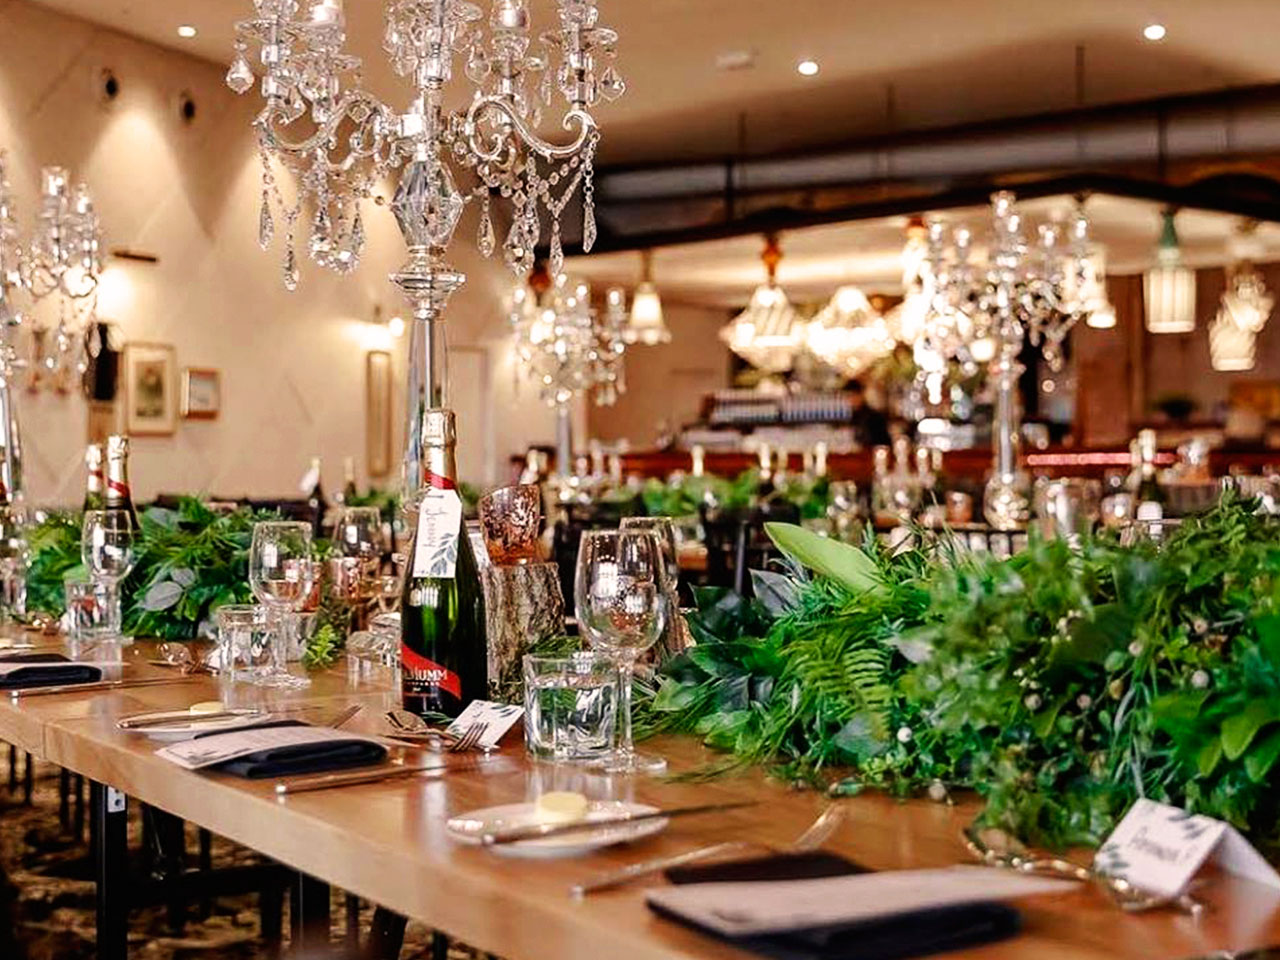 Long Tables And Chairs Setup For An Event With Table Centerpieces, Wines And Wine Glasses